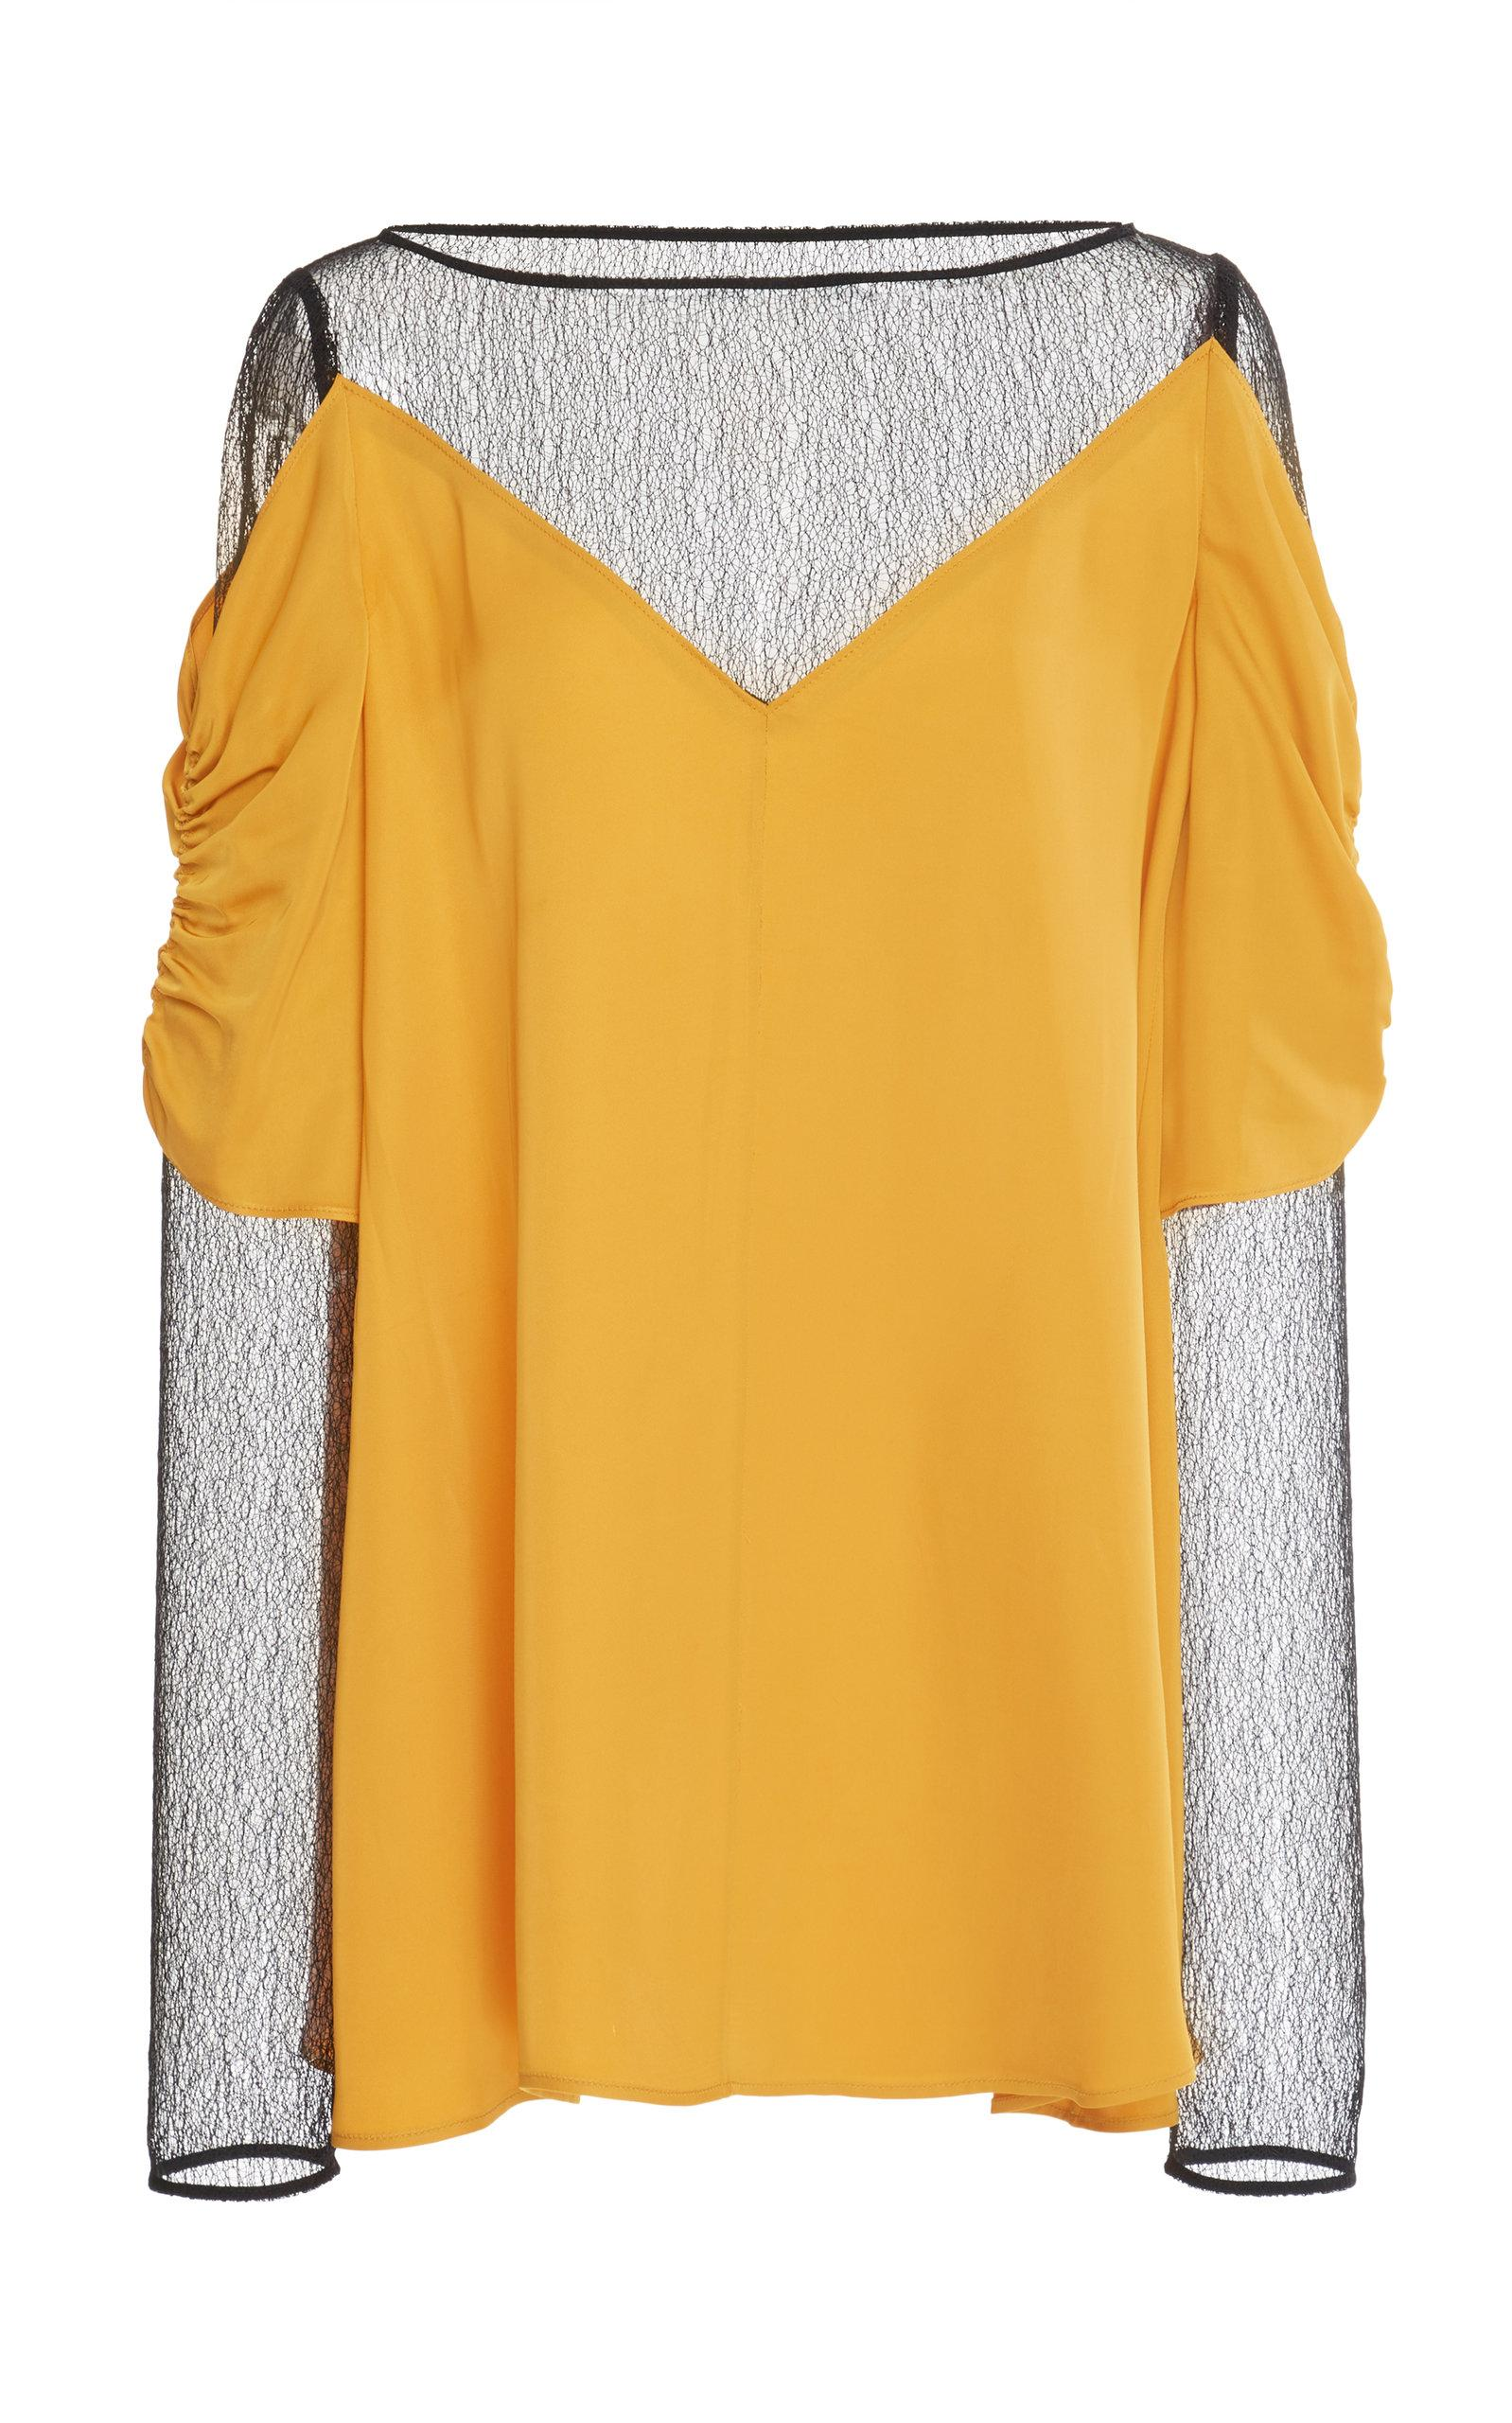 Adeam Layered Lace Top In Yellow